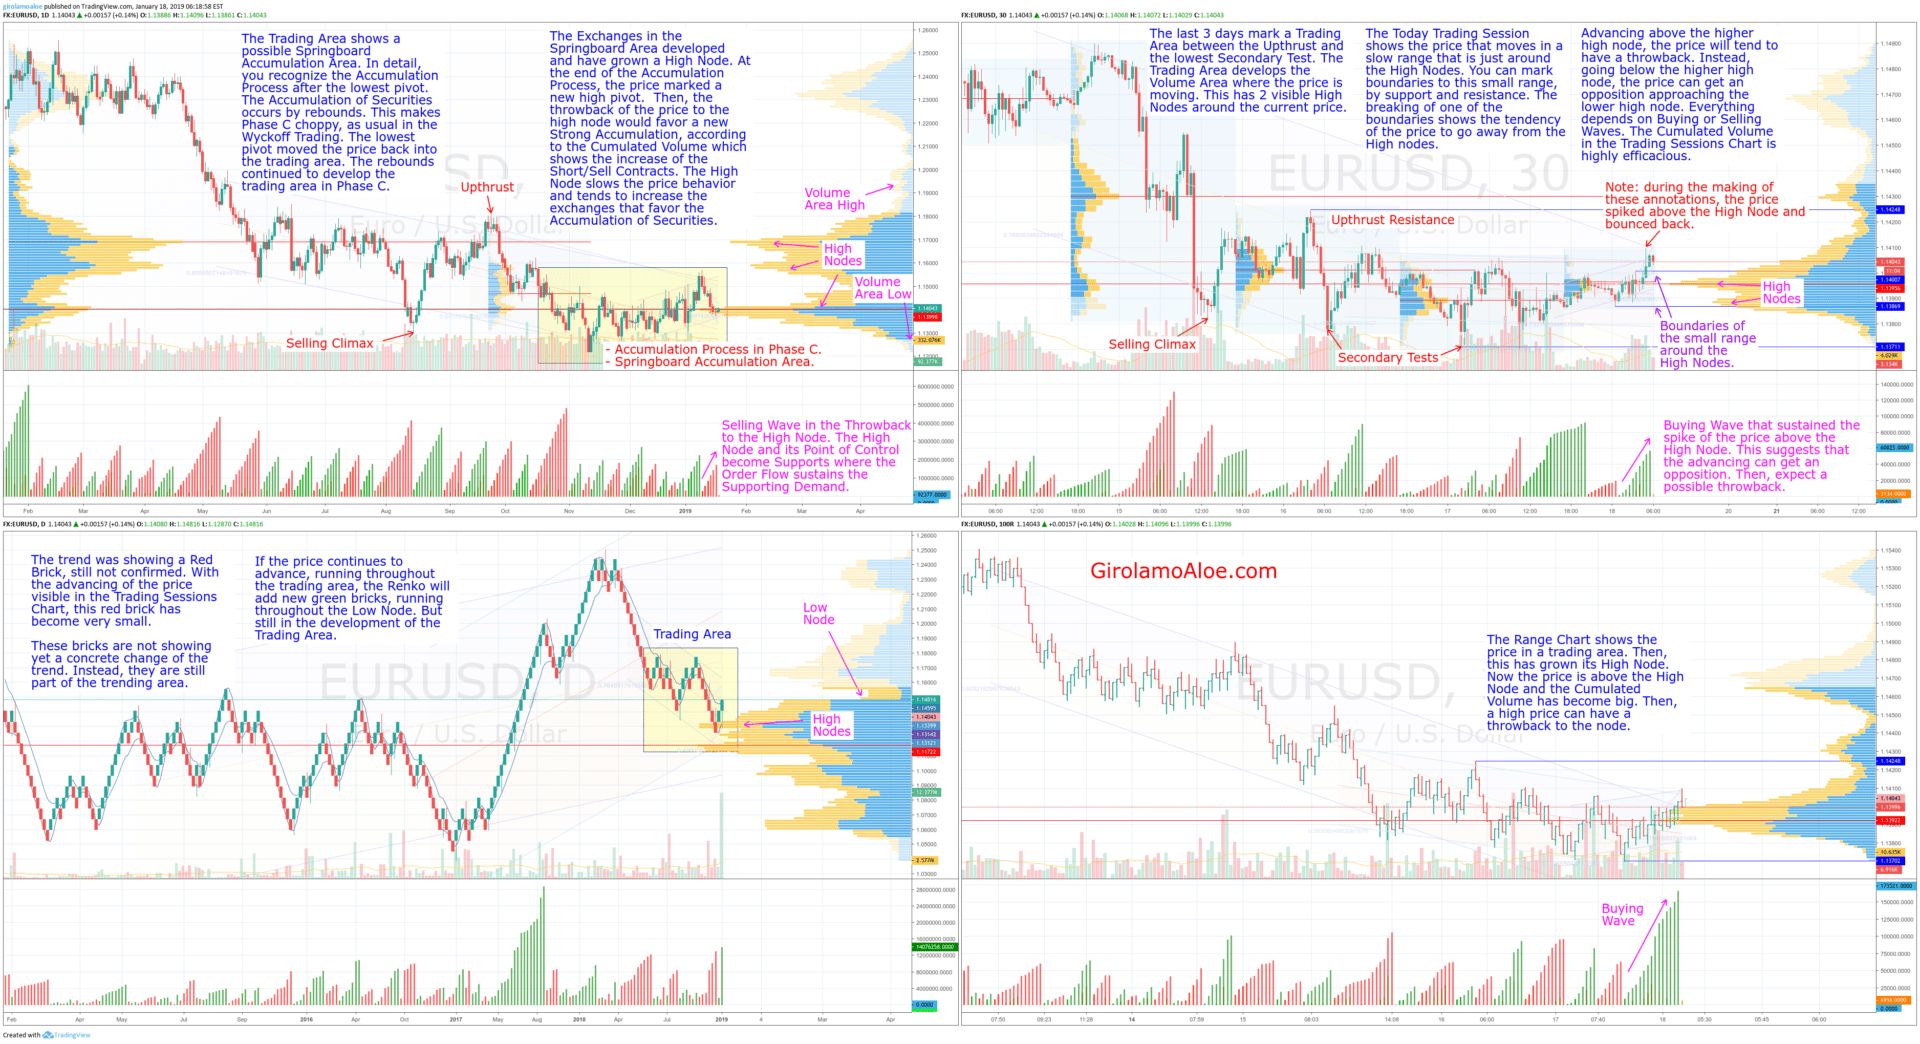 V229 – EURUSD – Understanding Exchanges per Price and Trend in the Springboard Accumulation